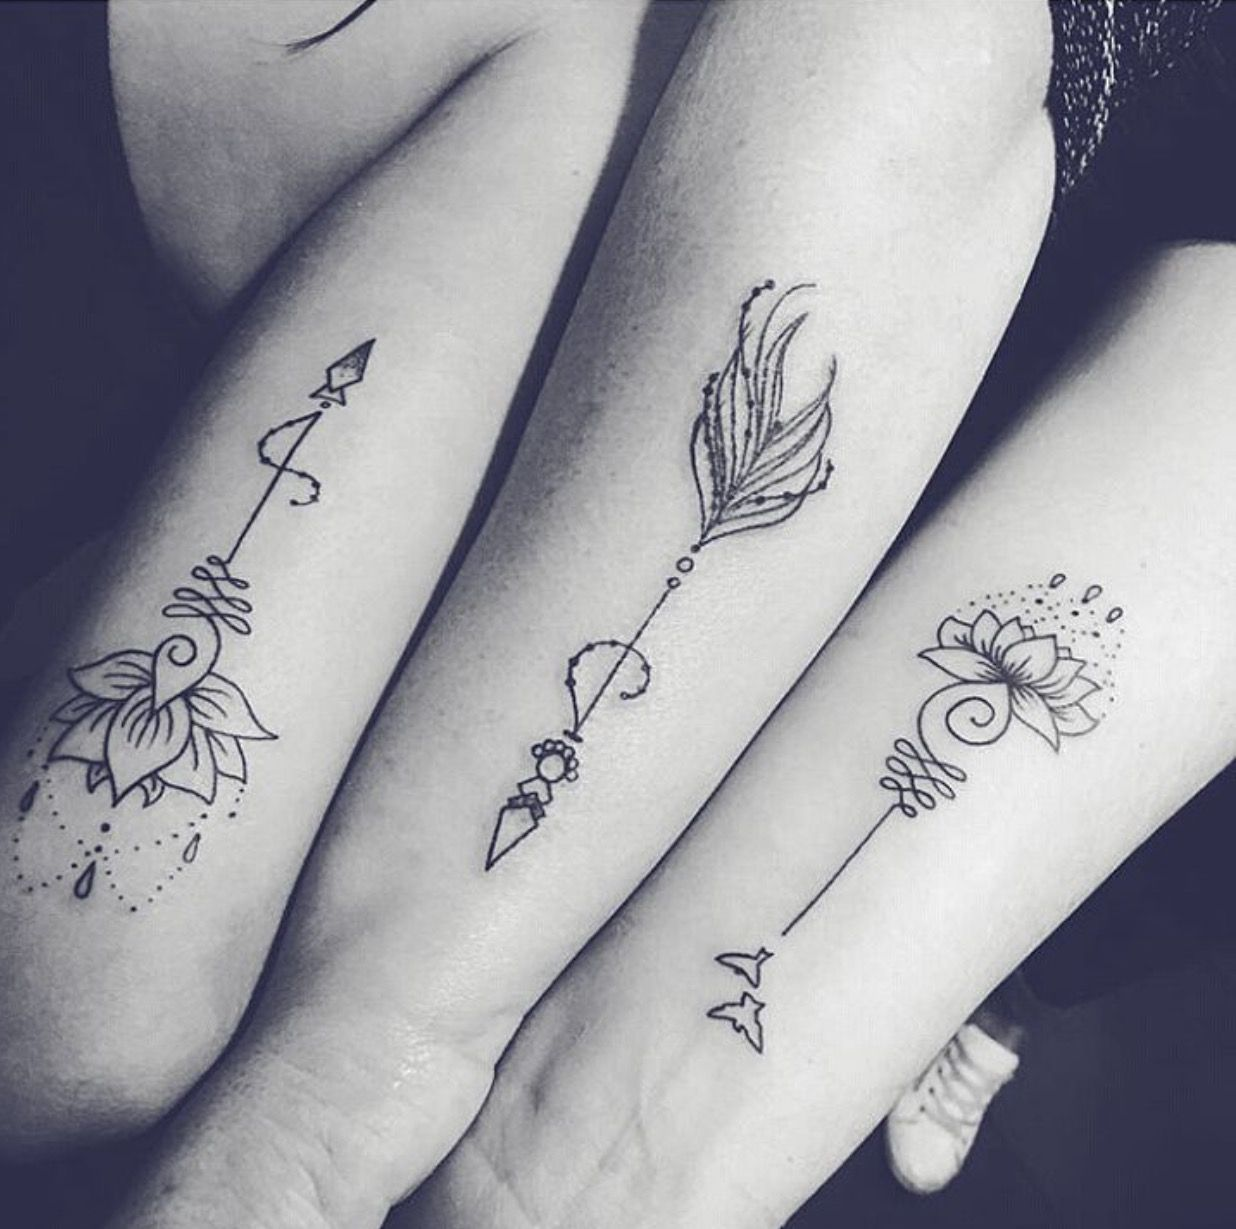 Pin by jéssica santos on tatuagem pinterest